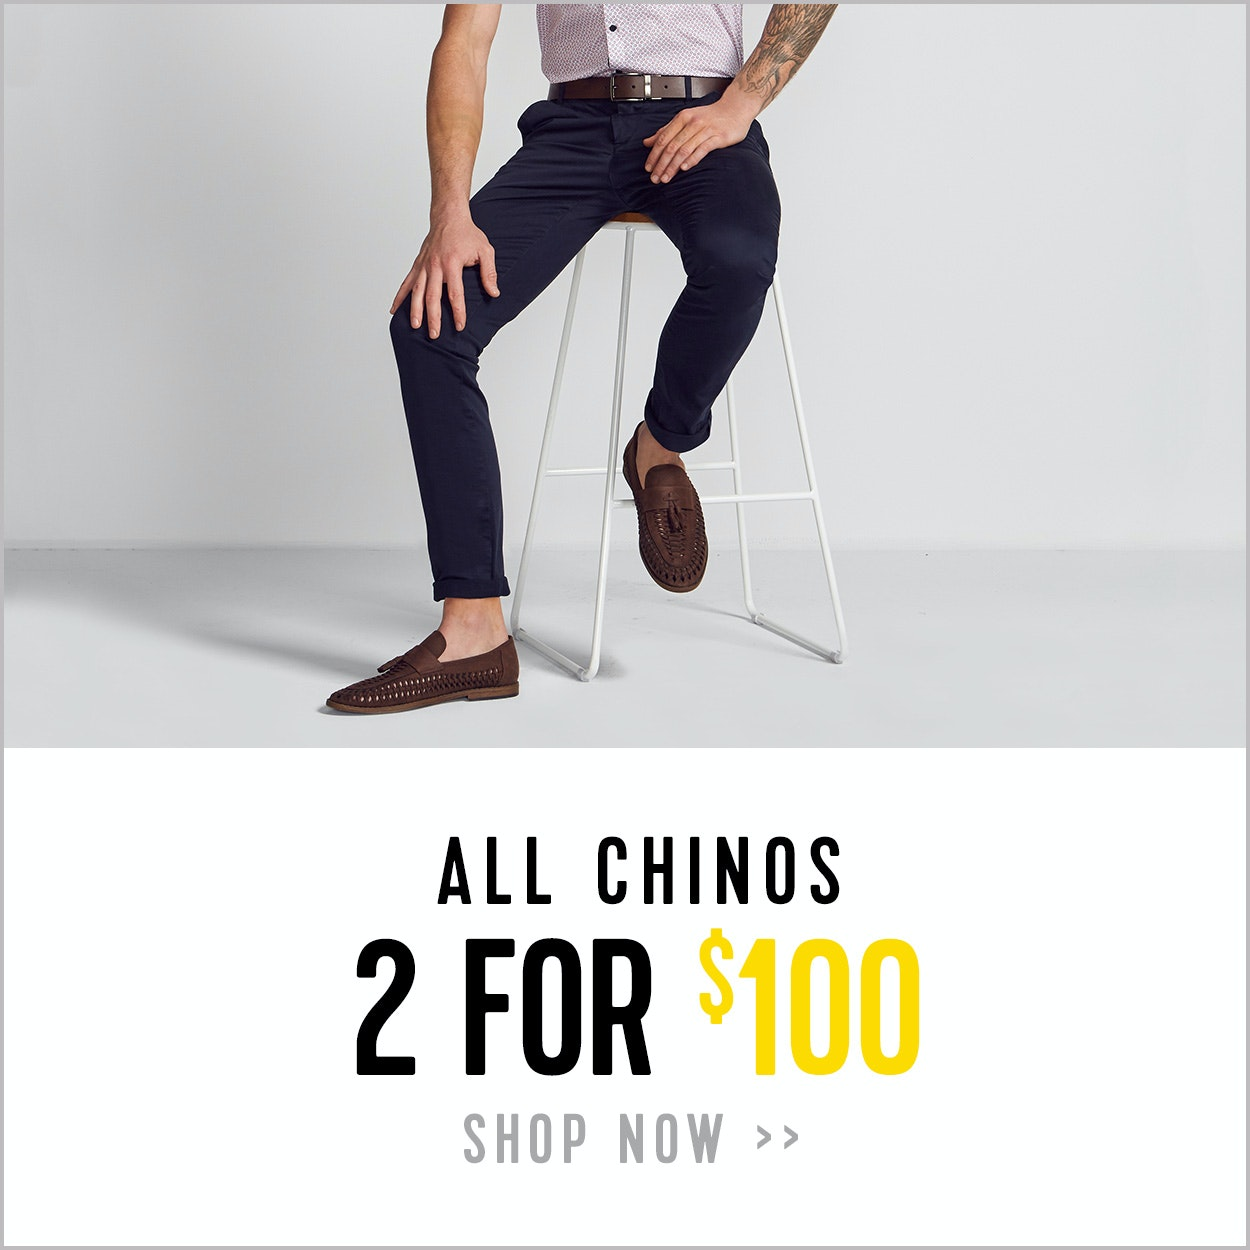 Chinos - 2 for $100